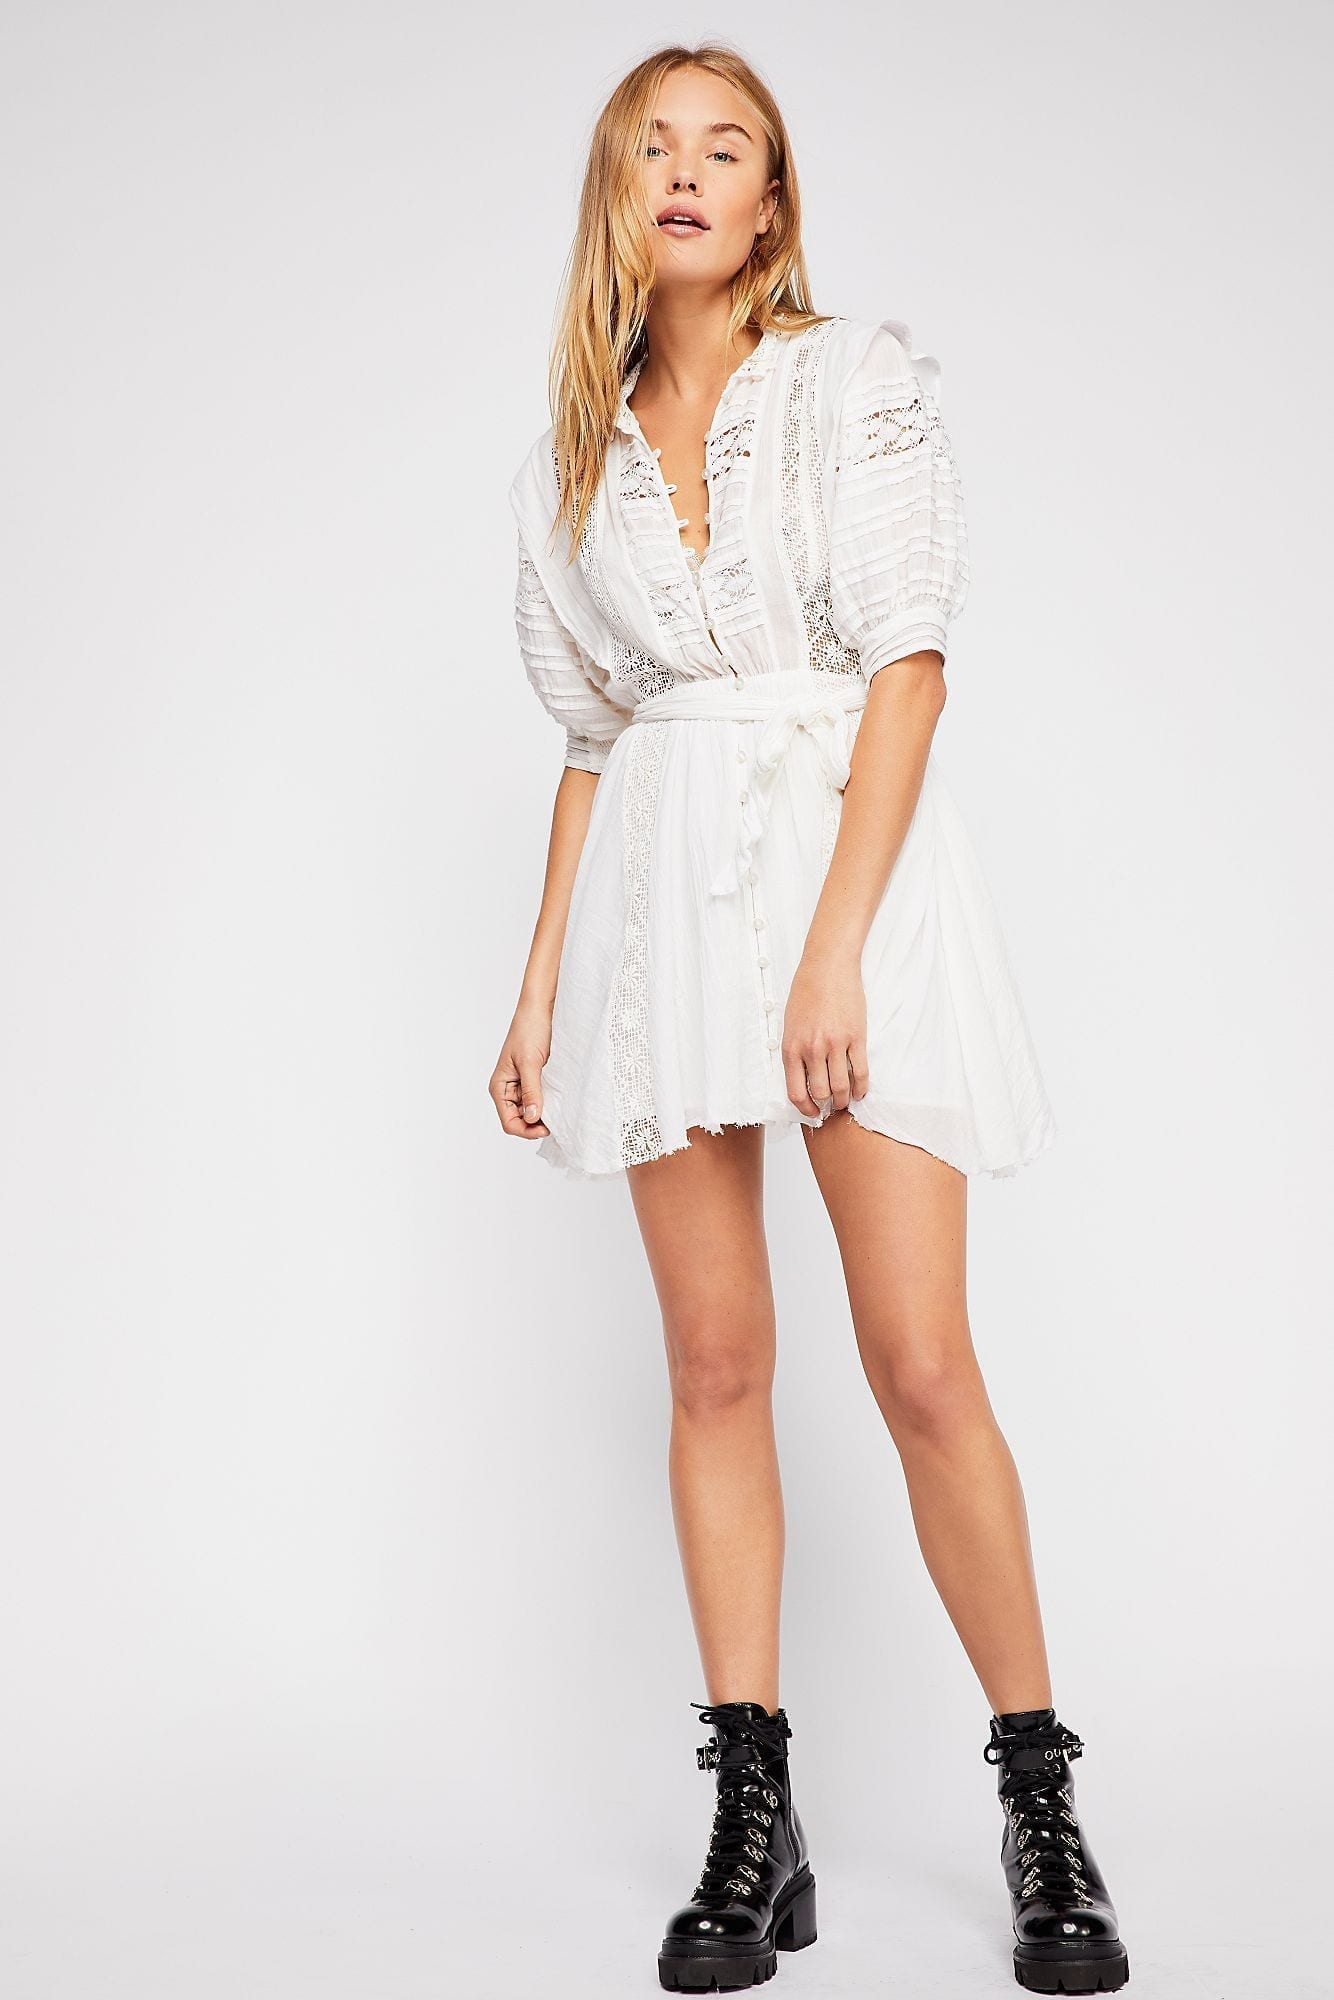 f903cd04f1 FREEPEOPLE FP One Sydney Ivory Dress - We Select Dresses